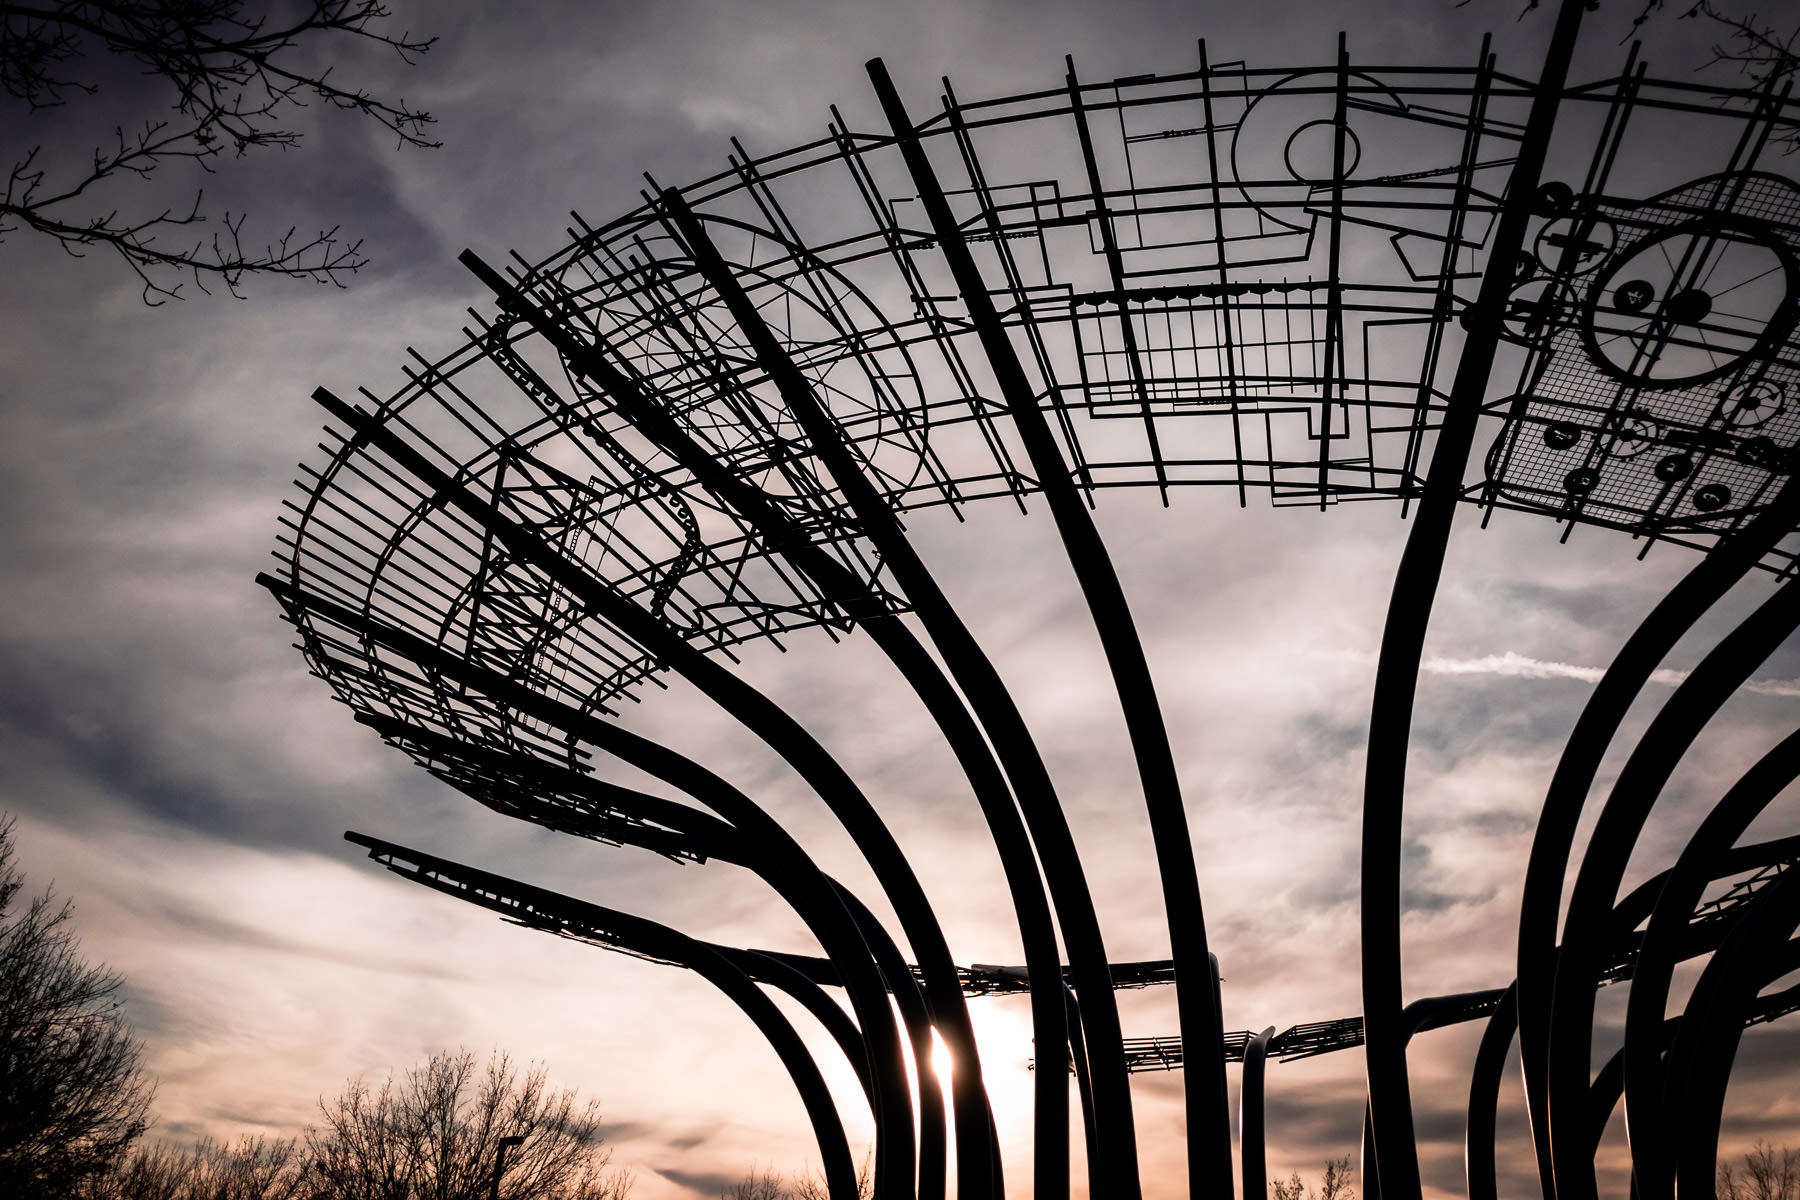 The sun sets on the 45-foot-tall, 140-foot-wide Blueprints sculpture at Addison Circle in Addison, Texas.